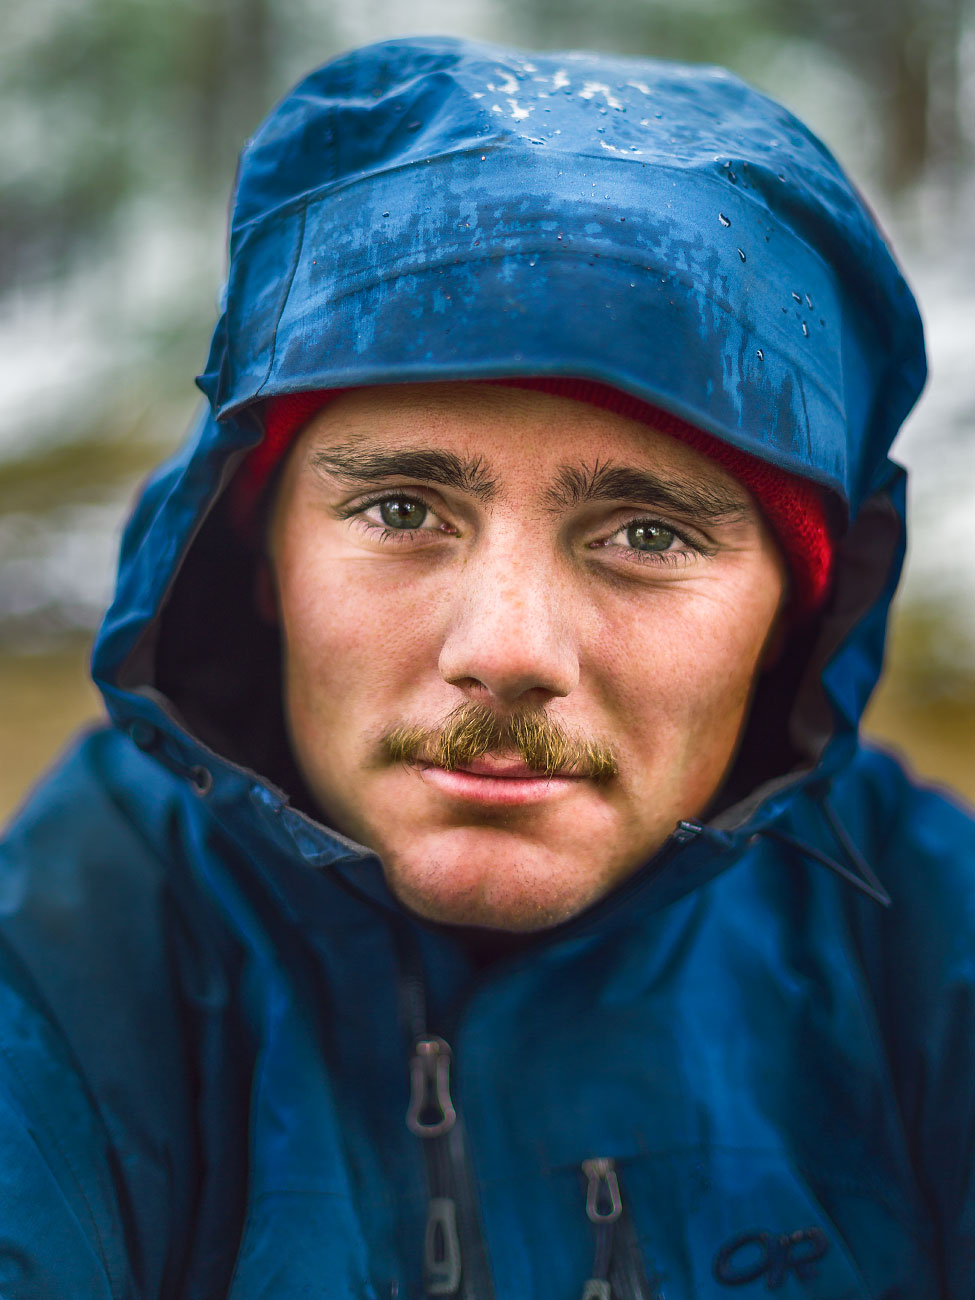 Peter Bergene rainy portrait Philmont Scout Ranch Cimarron New Mexico